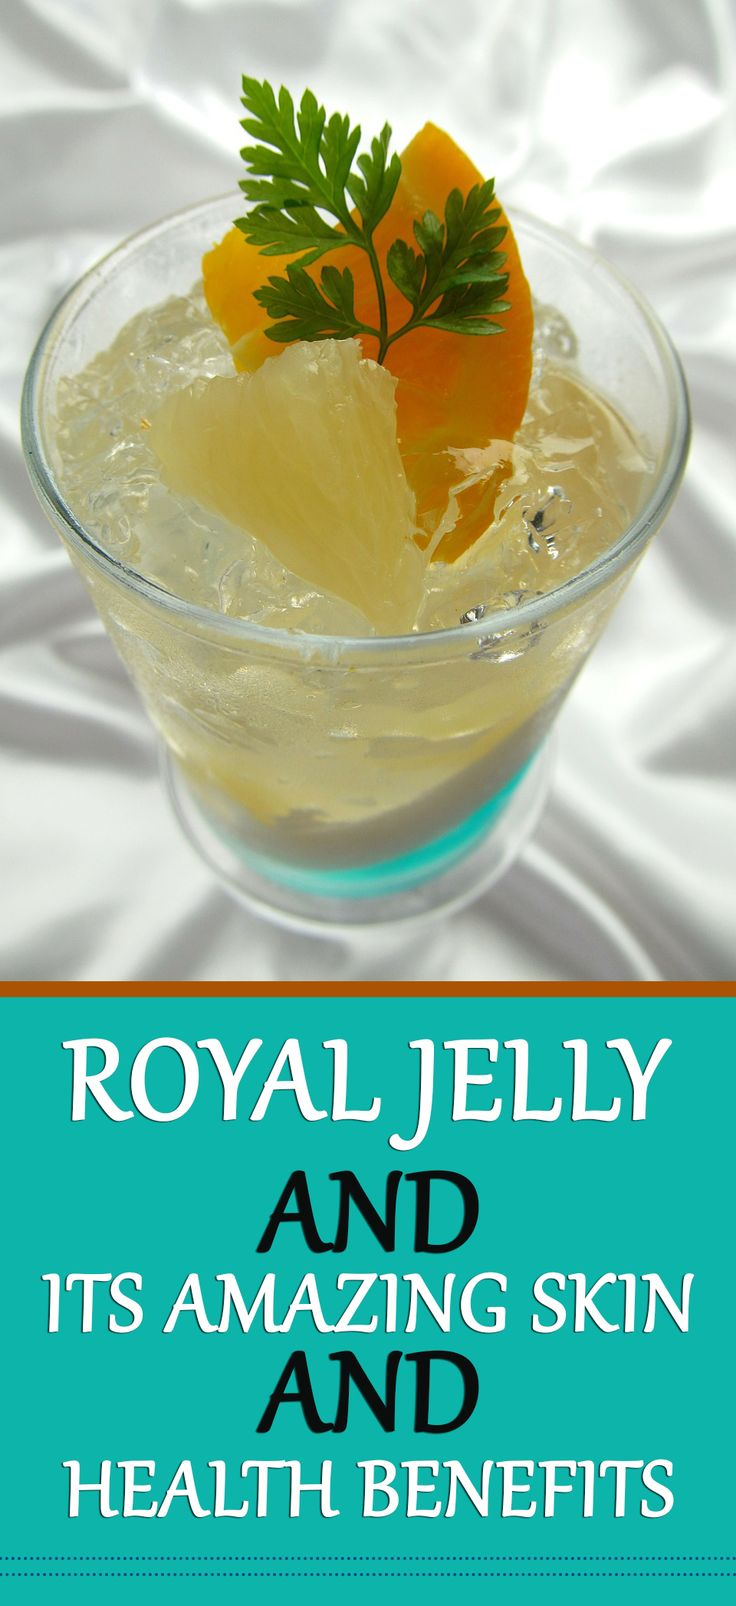 Royal jelly and its amazing skin and health benefits. My ... - photo#5